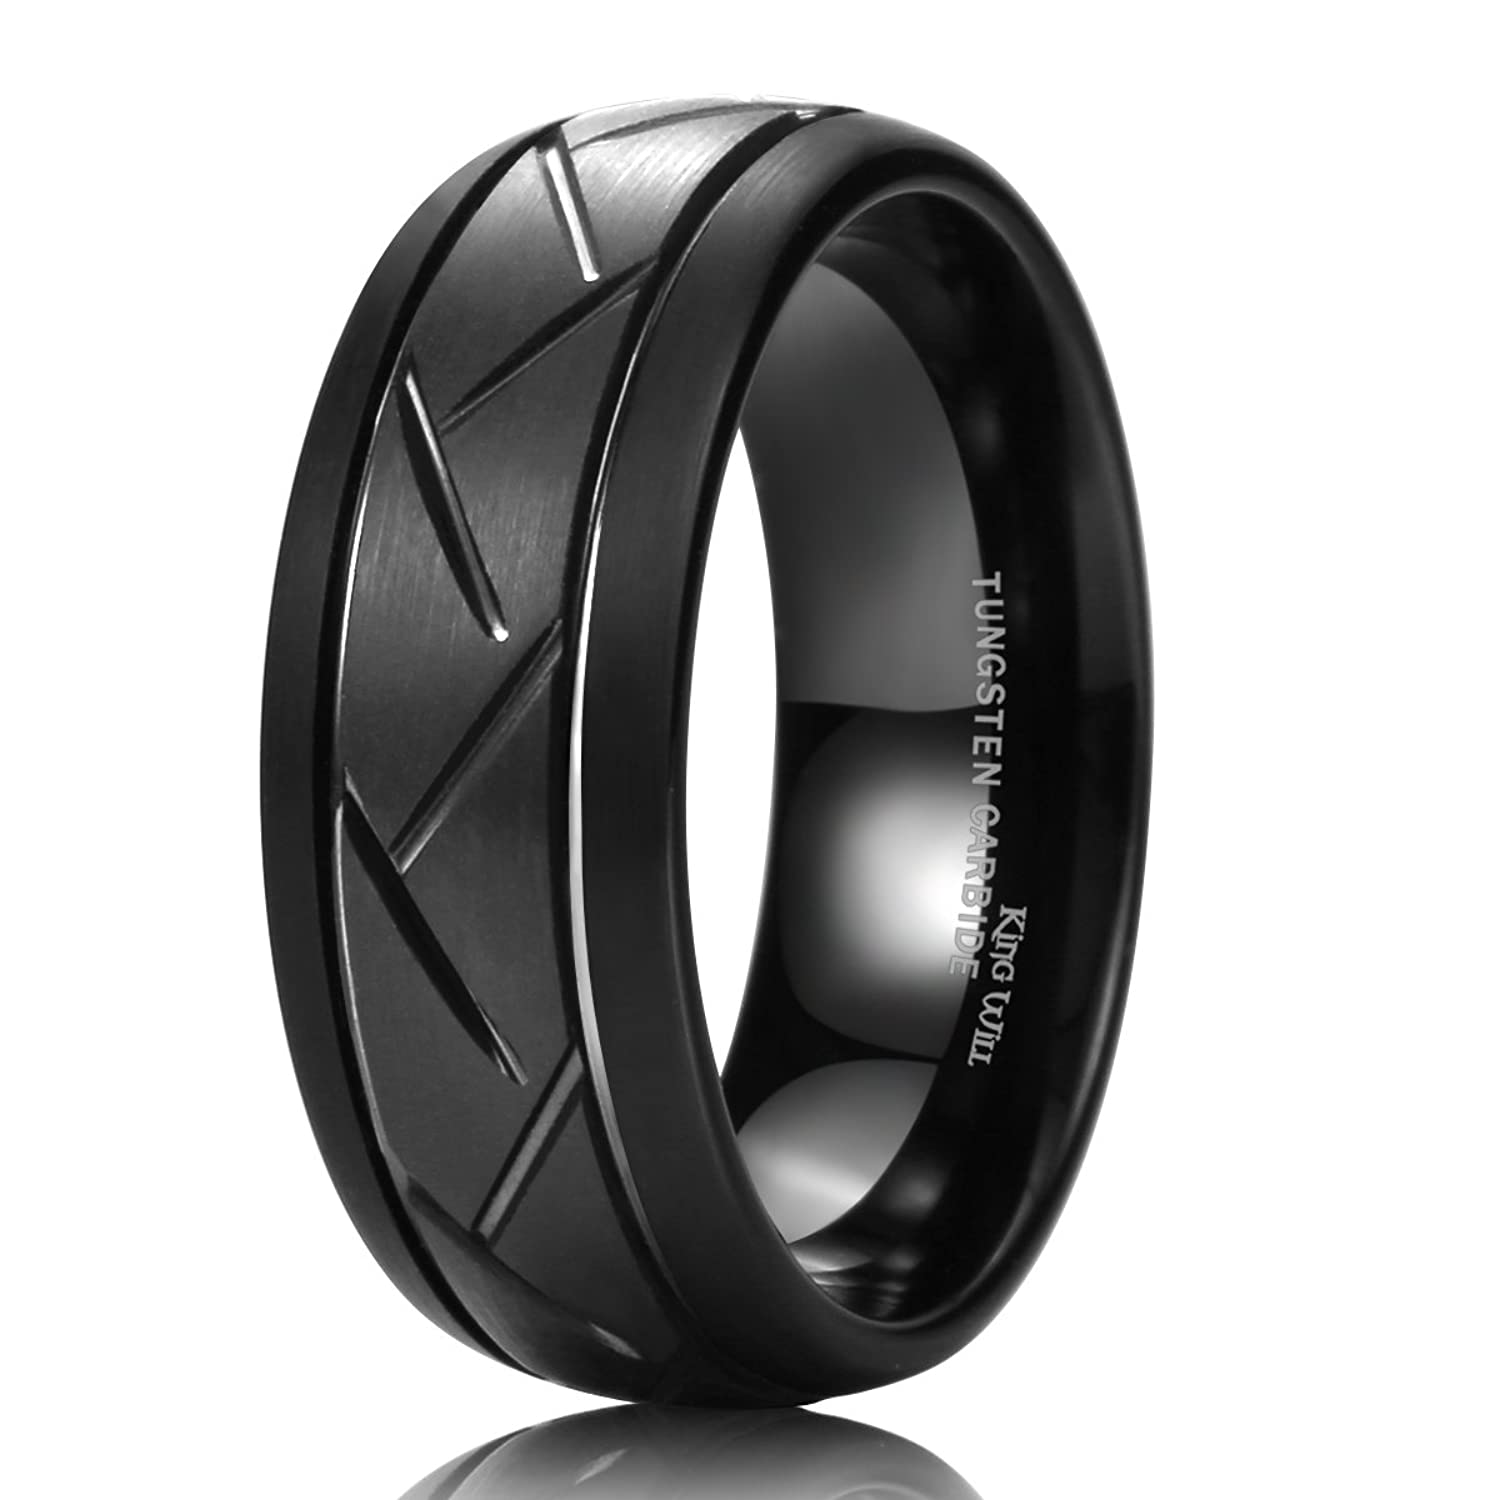 blasted pristine mens titanium ring p sand black band wood rings by grey gun men s il iron metal dessert wedding fullxfull